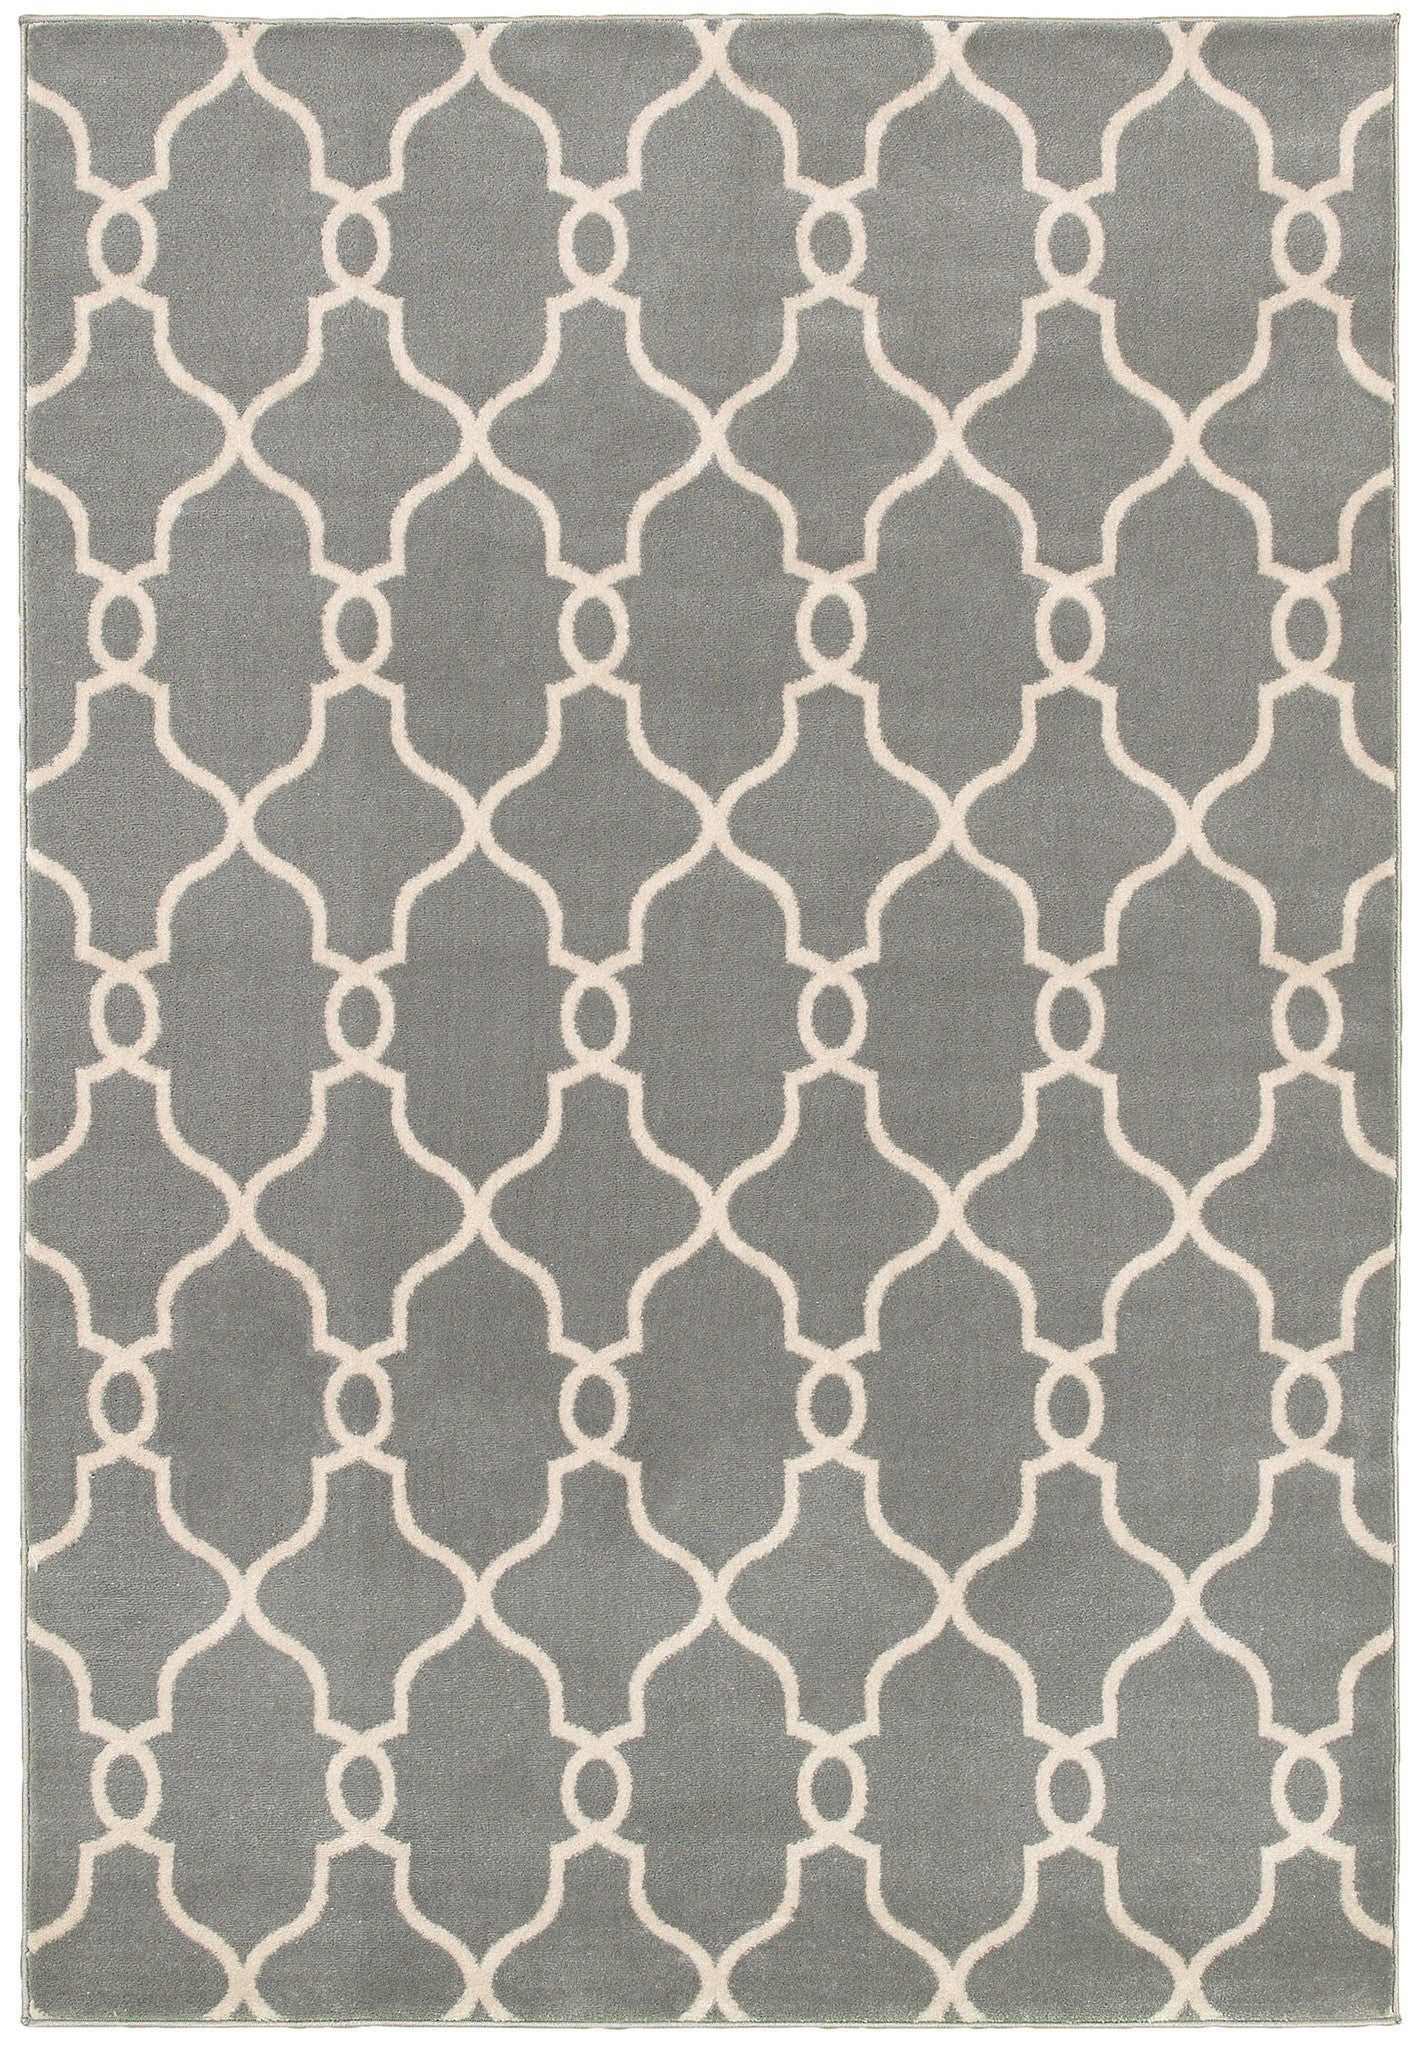 LR Resources Adana 80986 Gray Area Rug